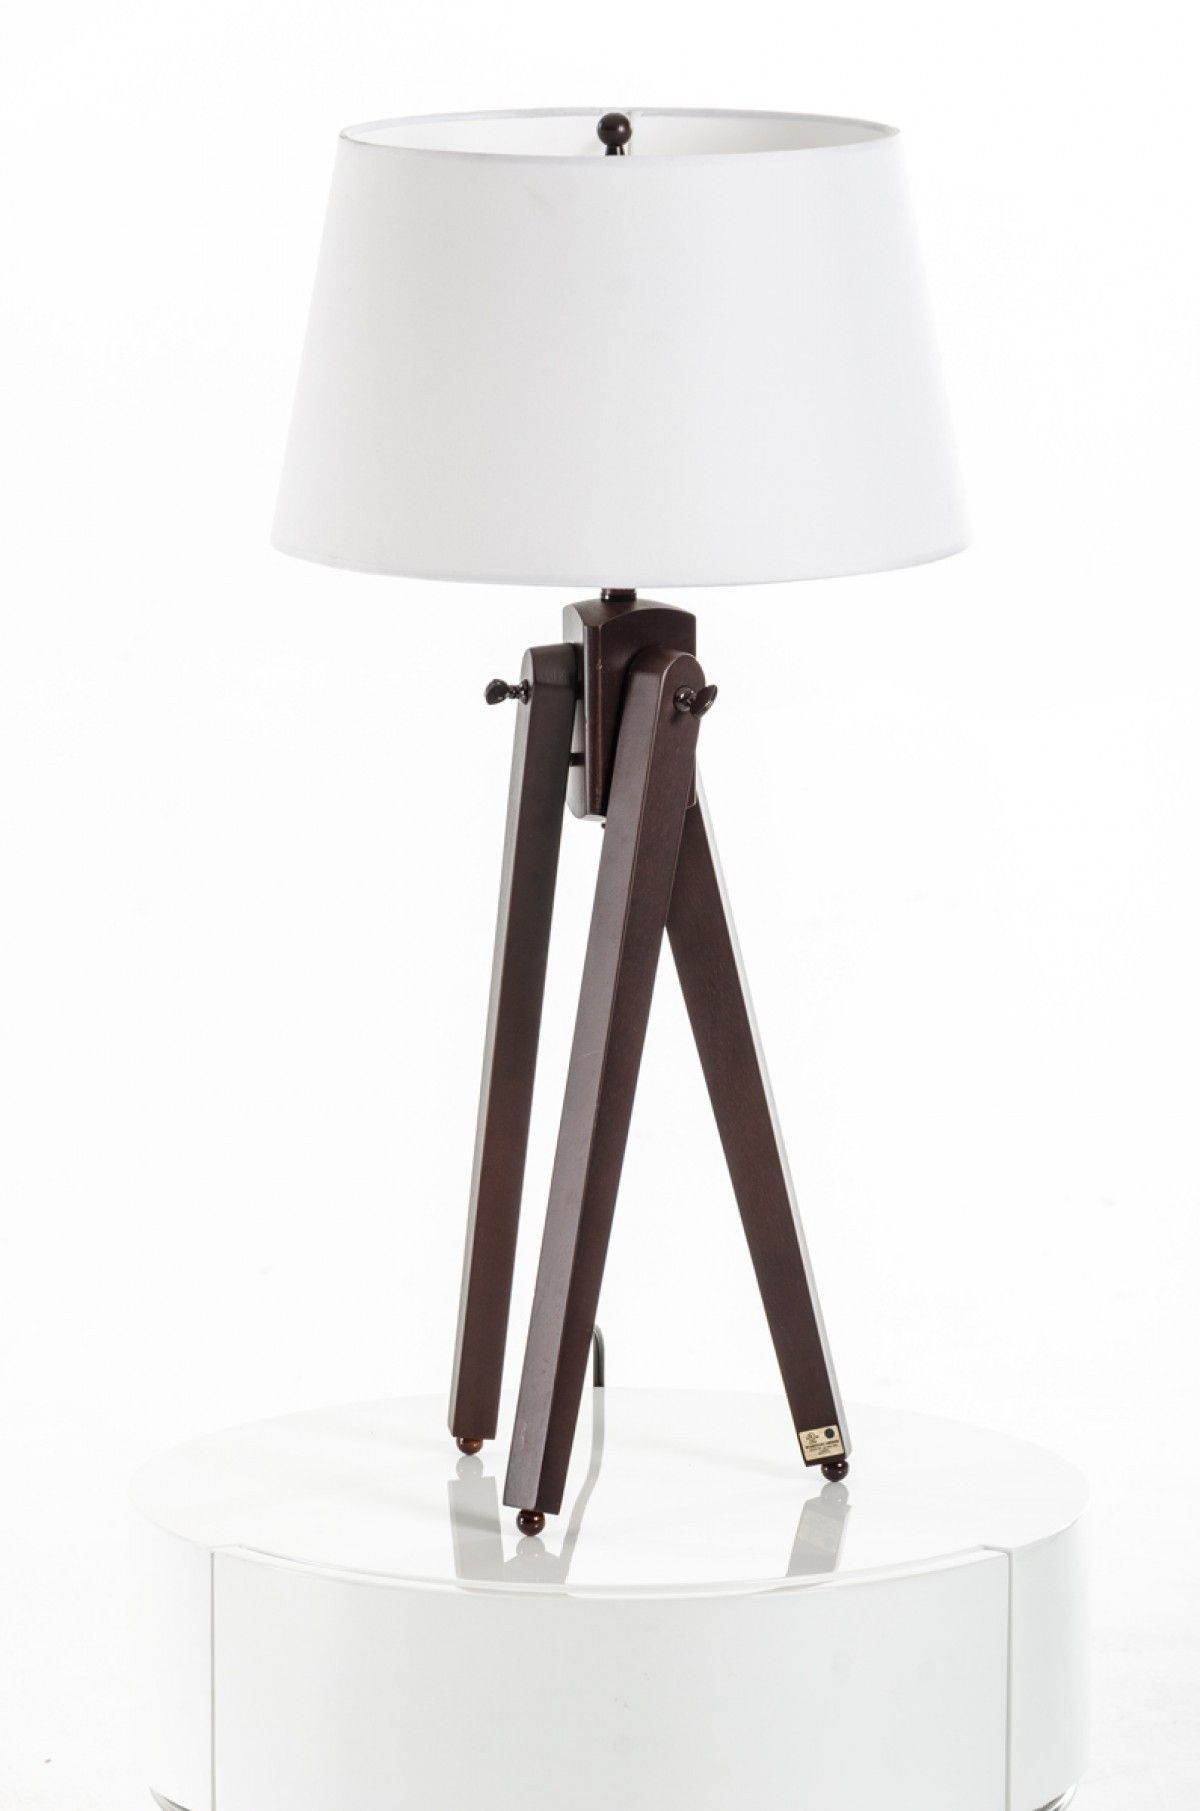 Modrest Della White And Wood Table Lamp Vgkrkm009t Wood Table